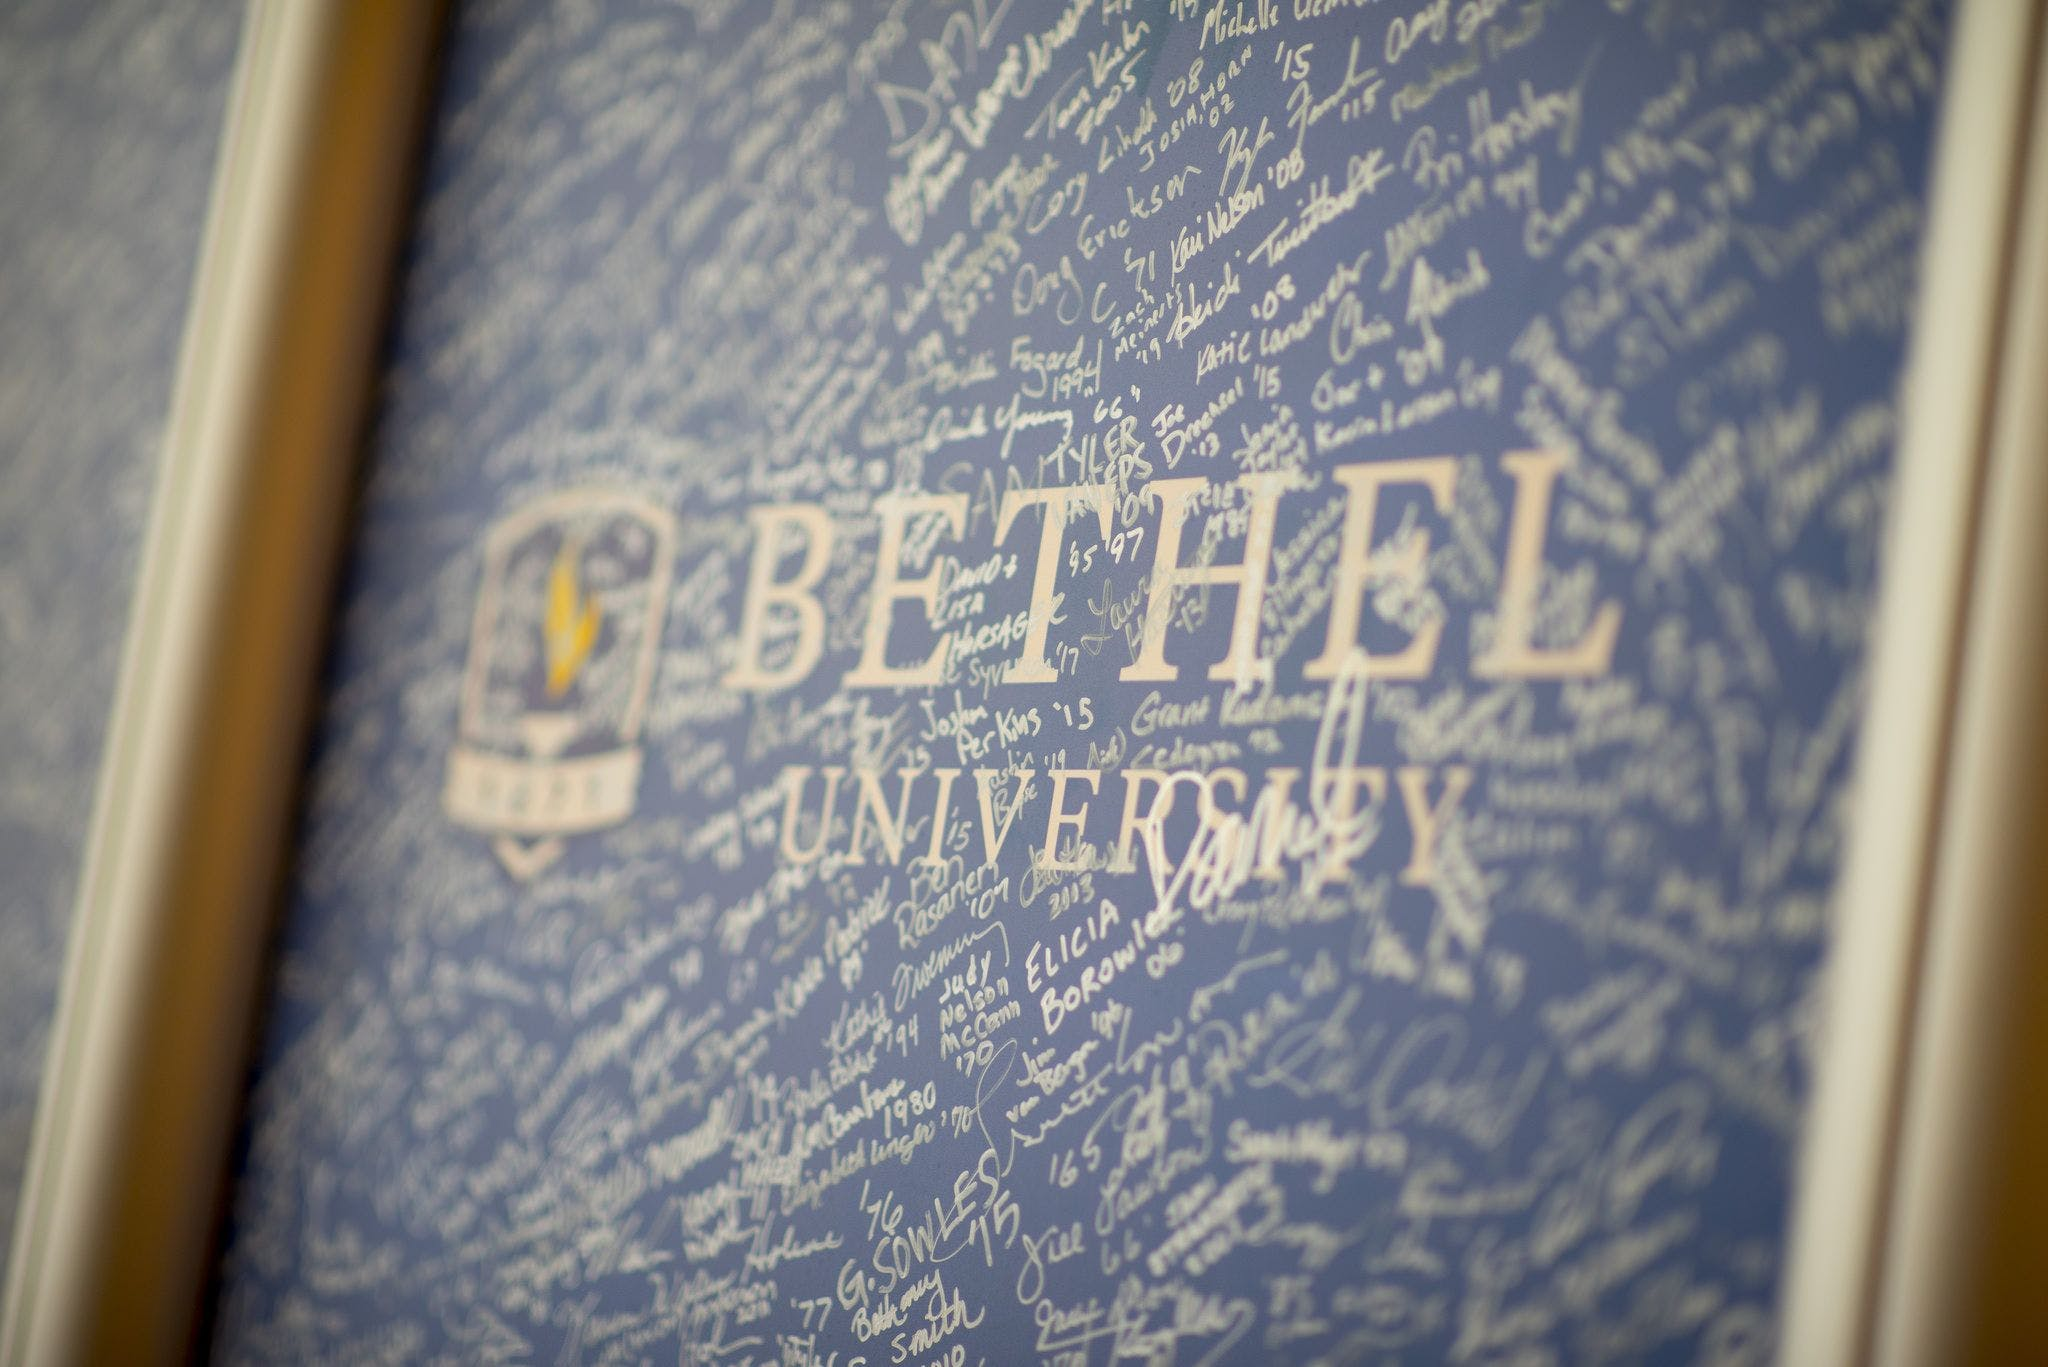 Bethel 2017 - A Year in Review | Bethel University